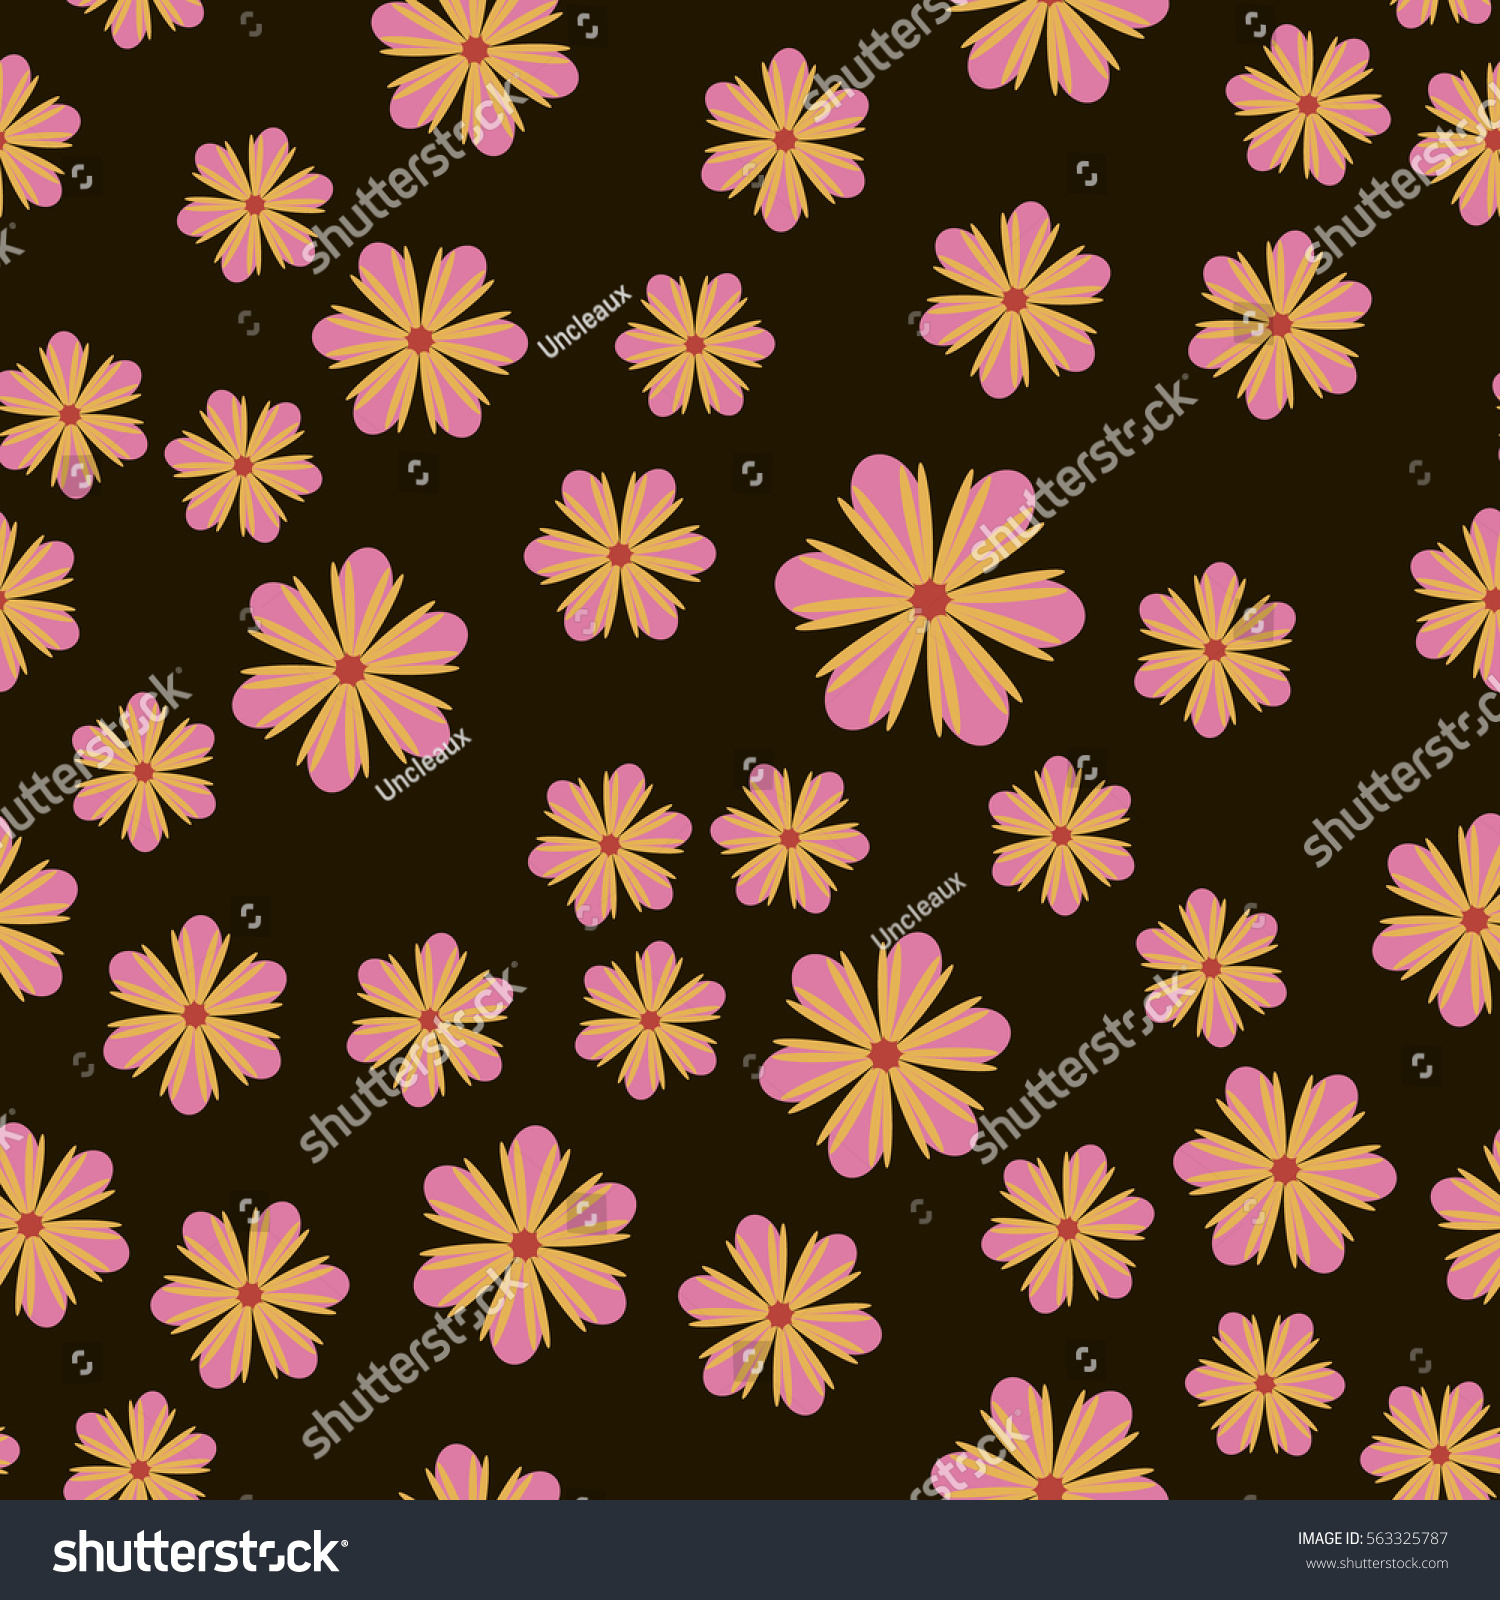 Exquisite Floral Ornament With Random Flowers For Fabric Wrapping